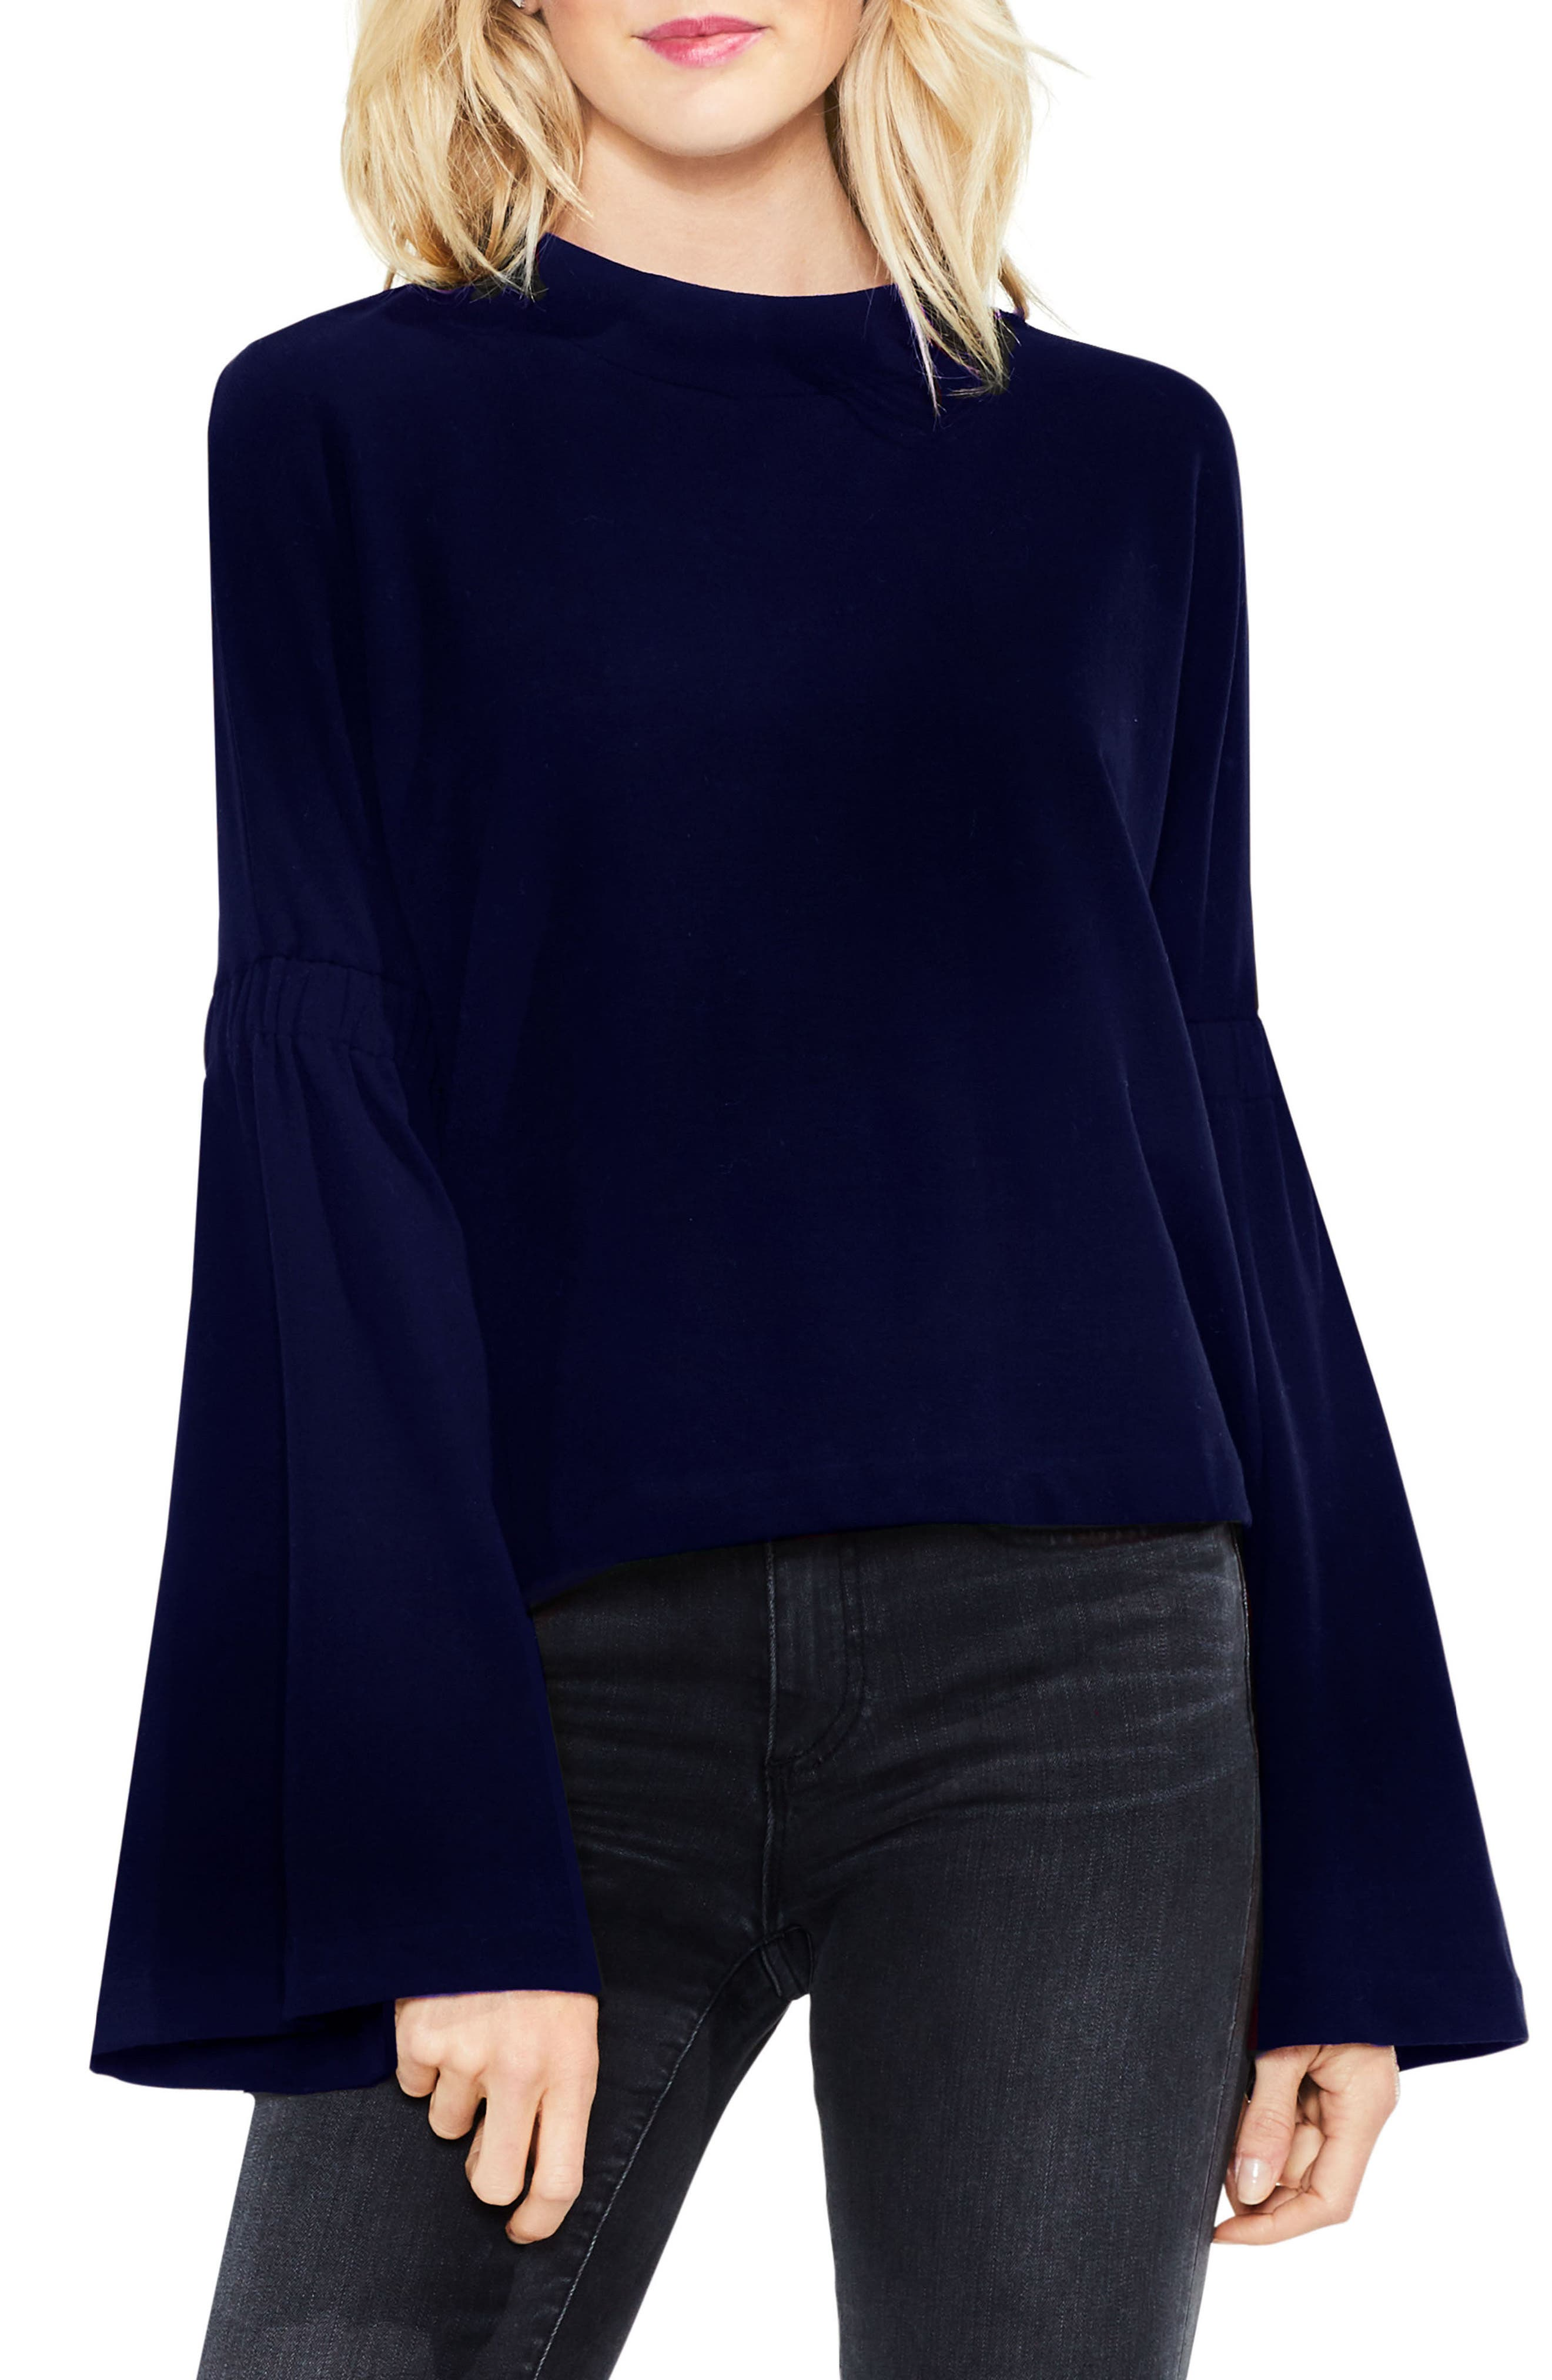 Main Image - Two by Vince Camuto Mock Neck Bell Sleeve Top (Regular & Petite)